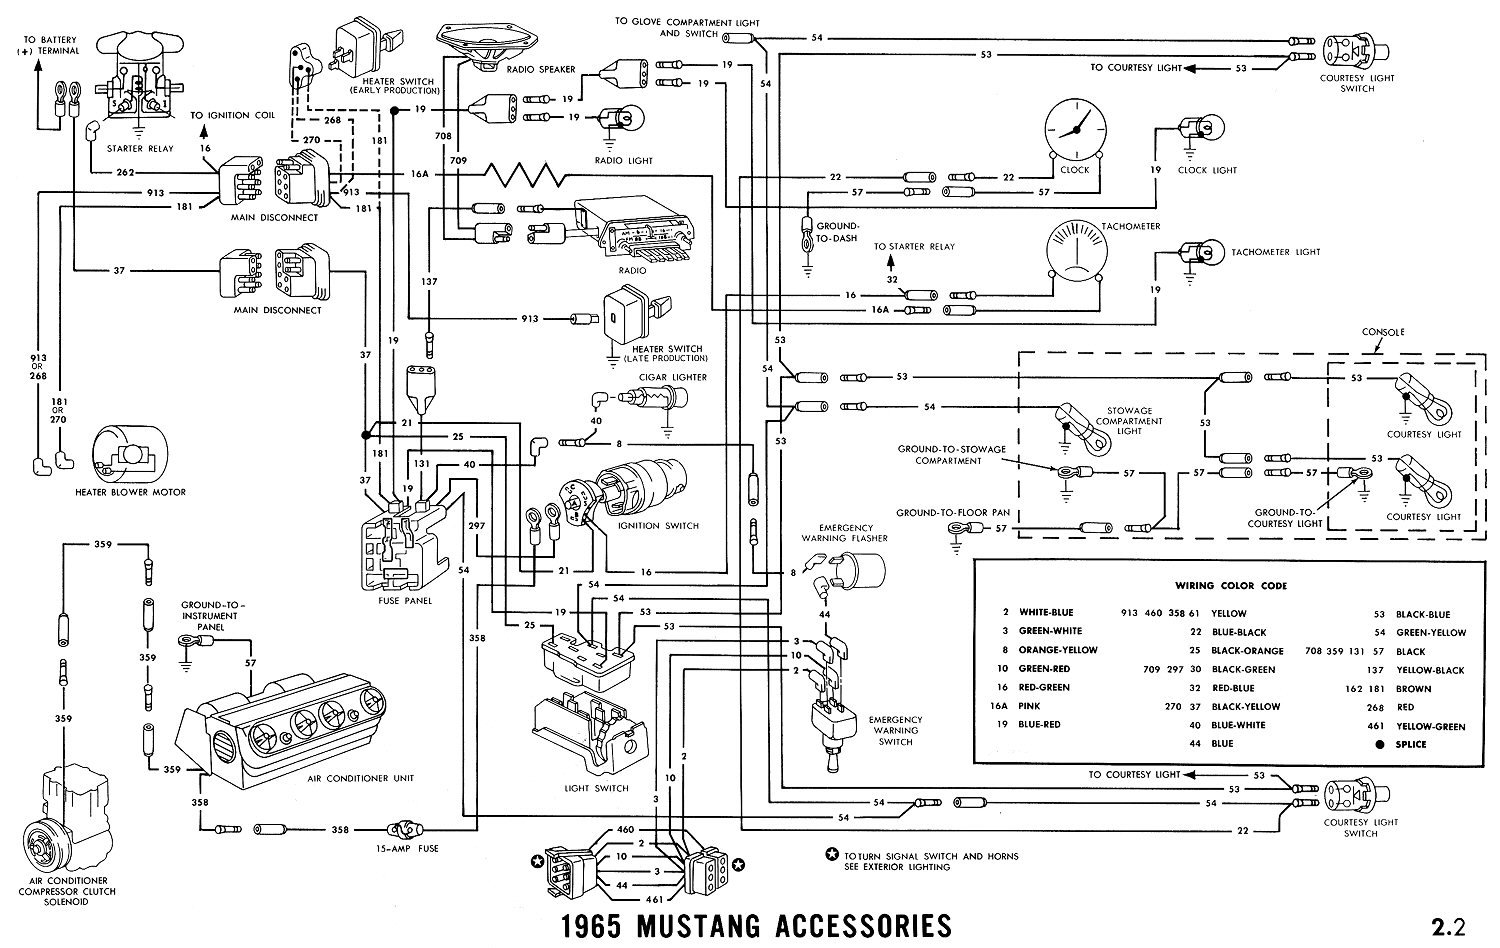 93554d1268999911 1965 mustang radio wiring connections 1965i 1965 mustang radio wiring connections? ford mustang forum 65 mustang radio wiring diagram at soozxer.org